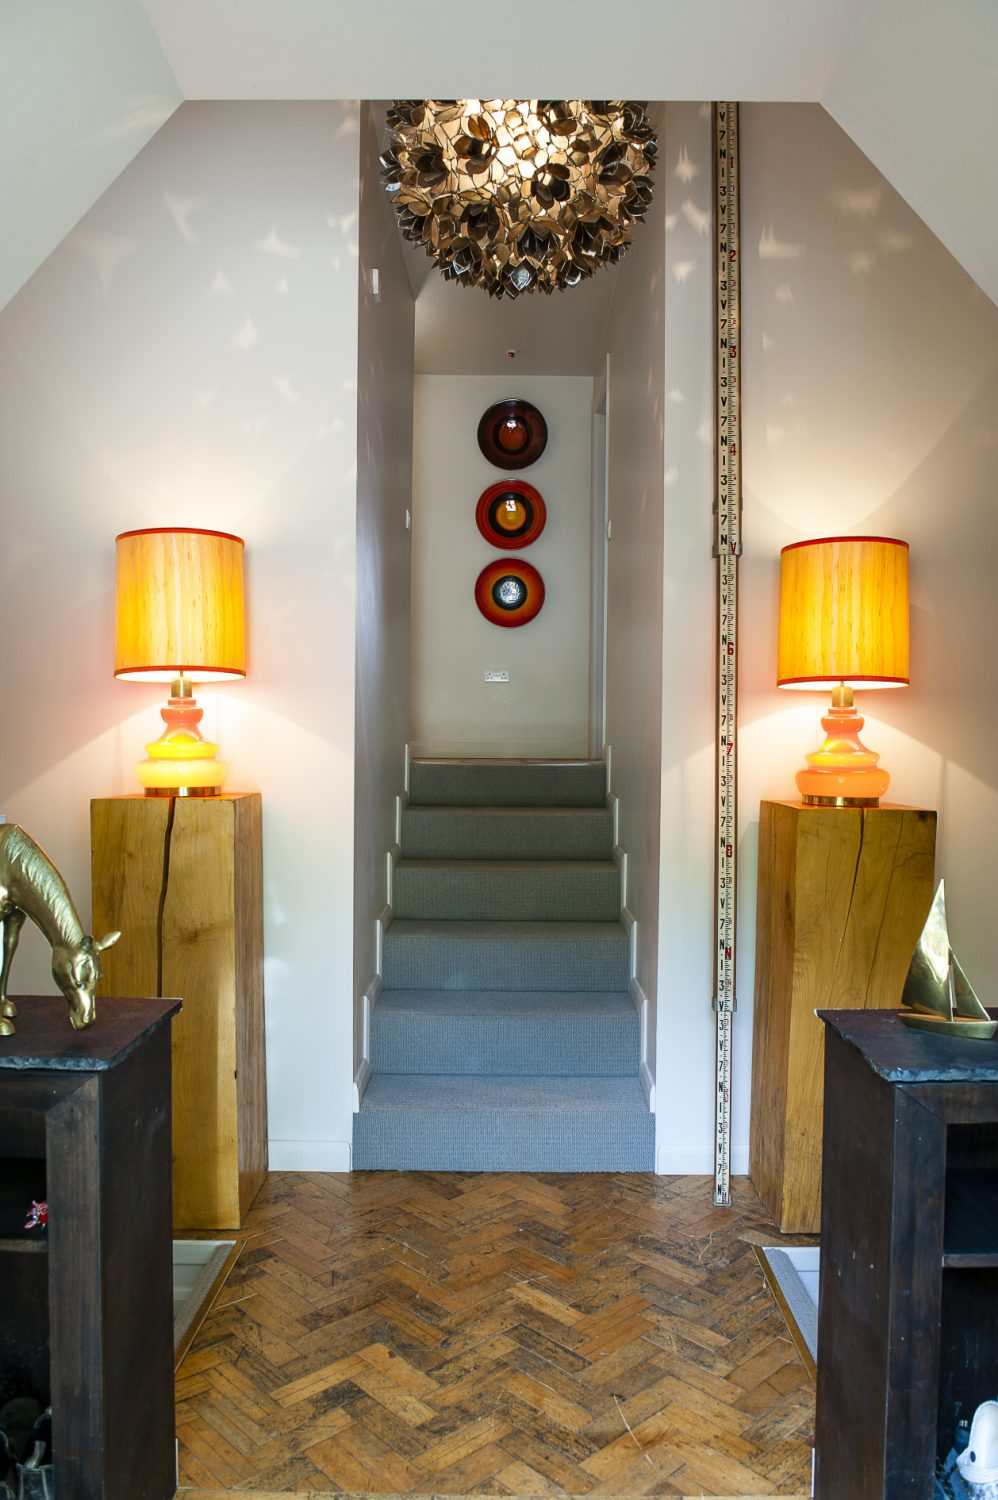 The hallway has two flights of steps down and one up. The three plates are part of a limited edition set of nine by Poole Pottery, commemorating the alignment of the planets in the year 2000